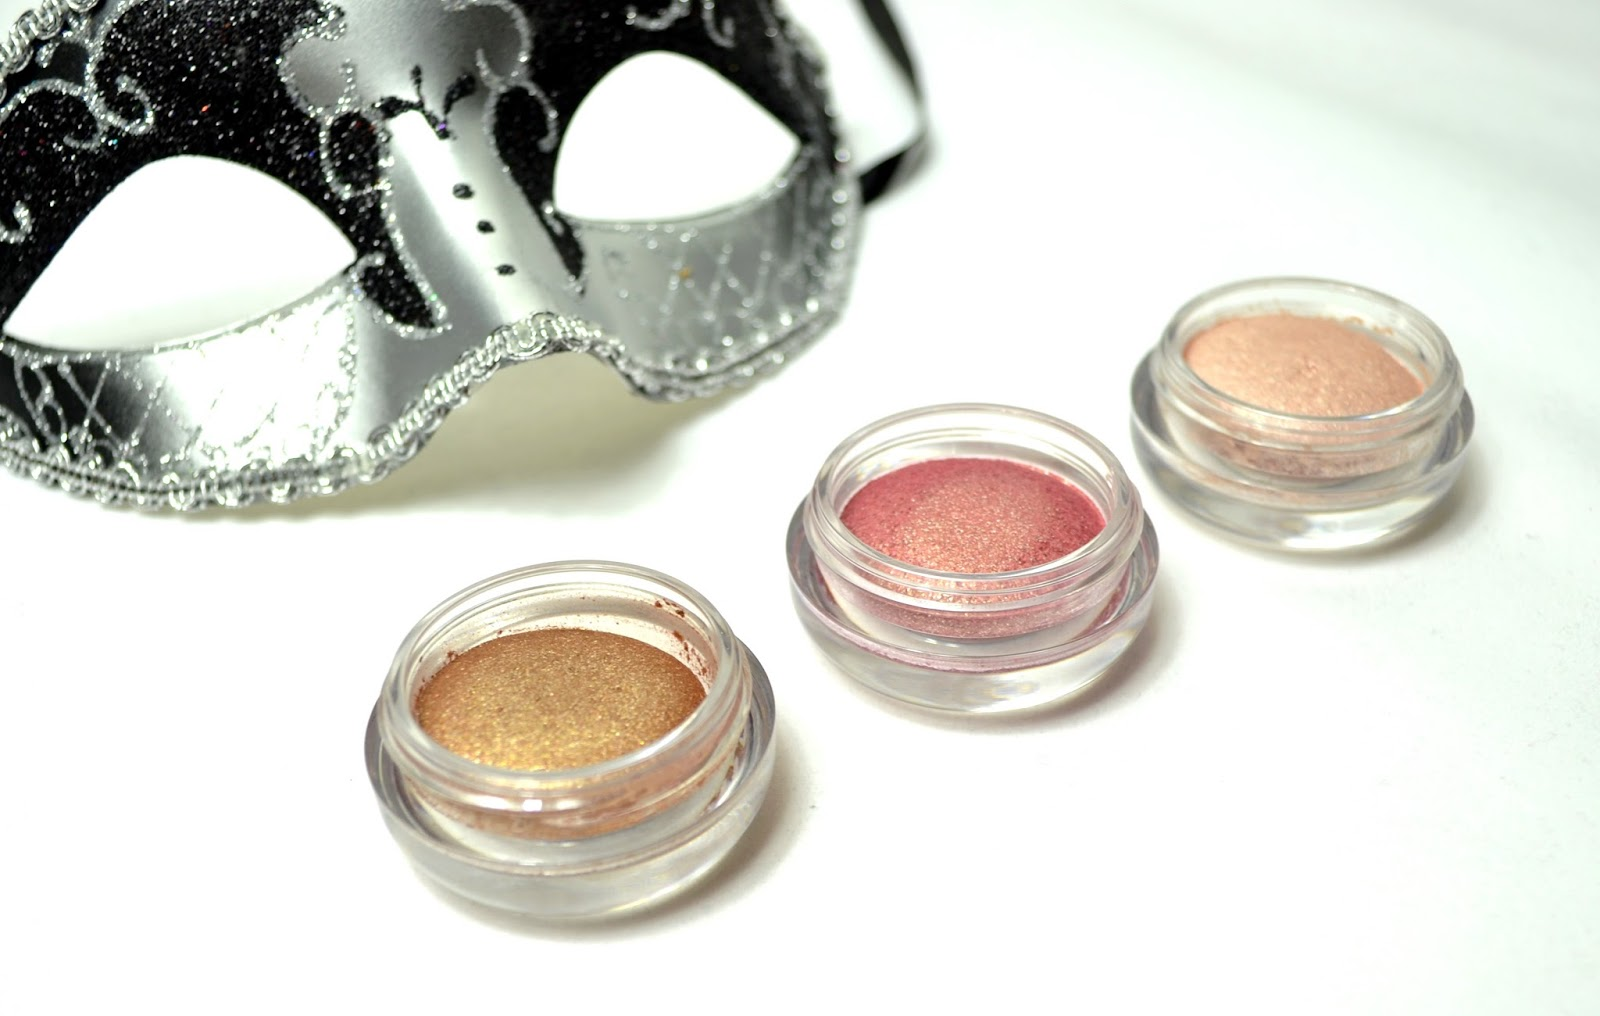 http://www.dreamingsmoothly.com/2014/02/missha-jewel-star-eyes-ces-dupes-des.html